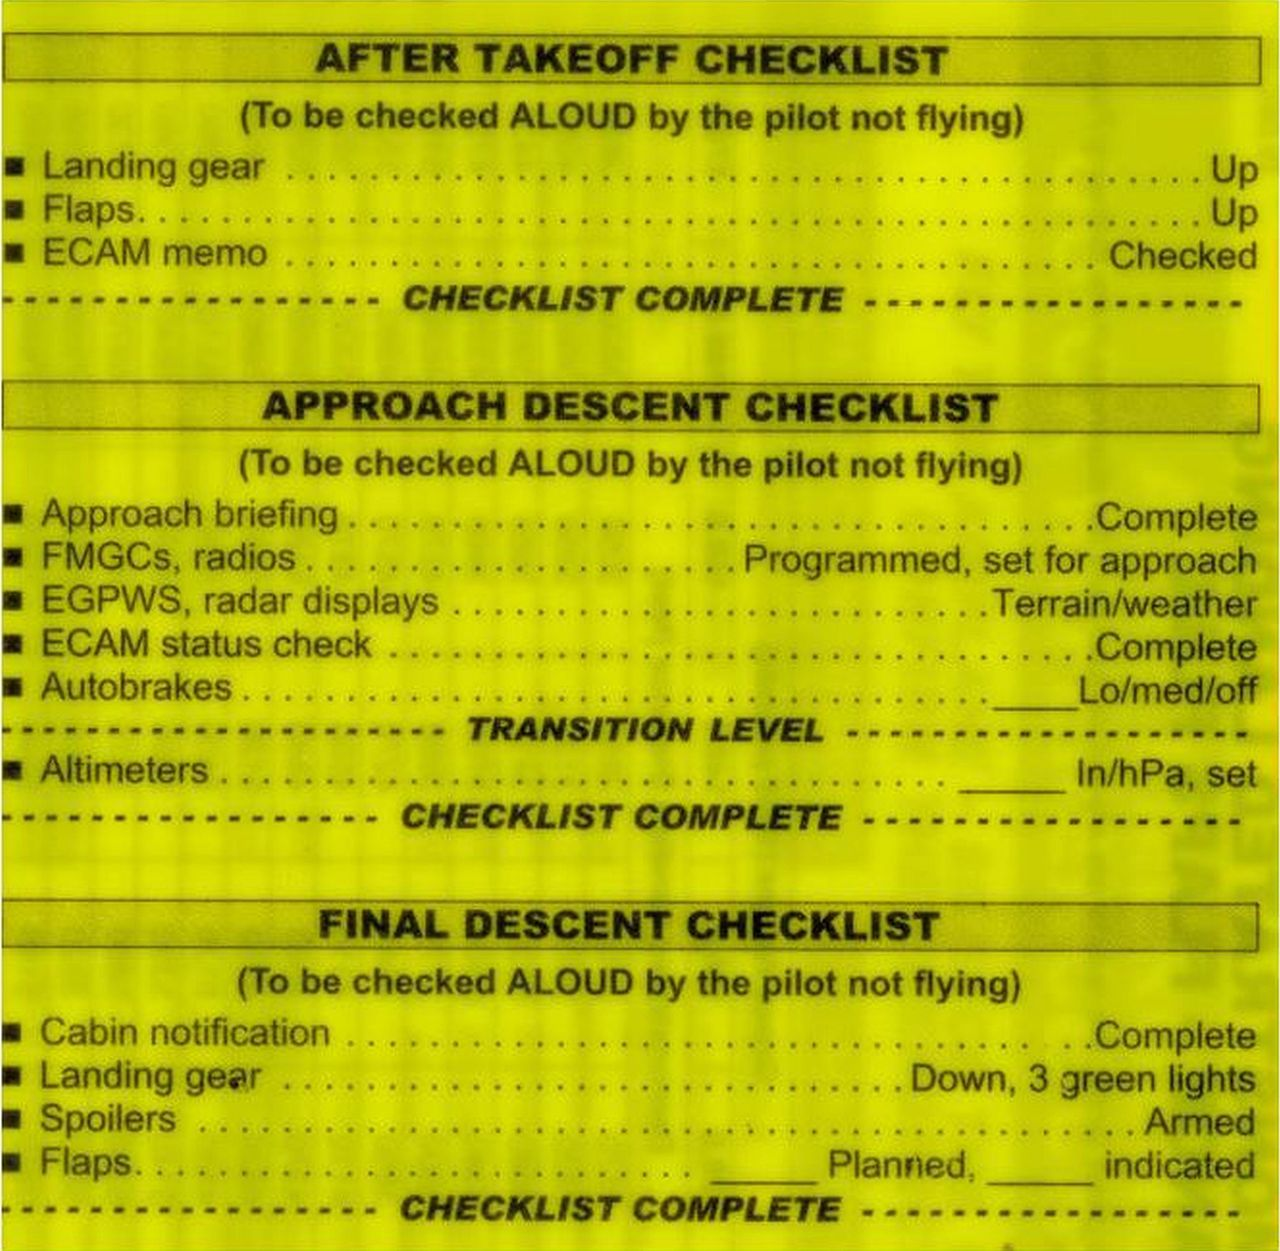 The problem with checklists | BMJ Quality & Safety